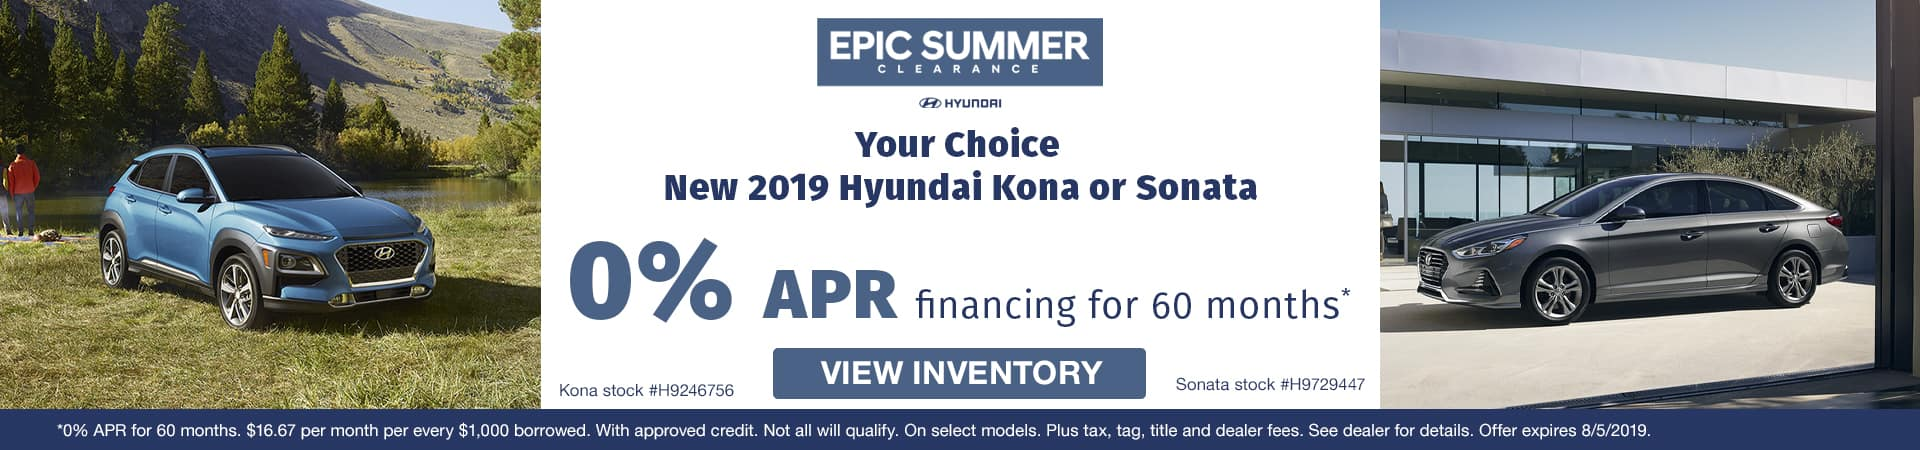 Get 0% APR on a new 2019 Hyundai Kona or Sonata in Murfreesboro TN